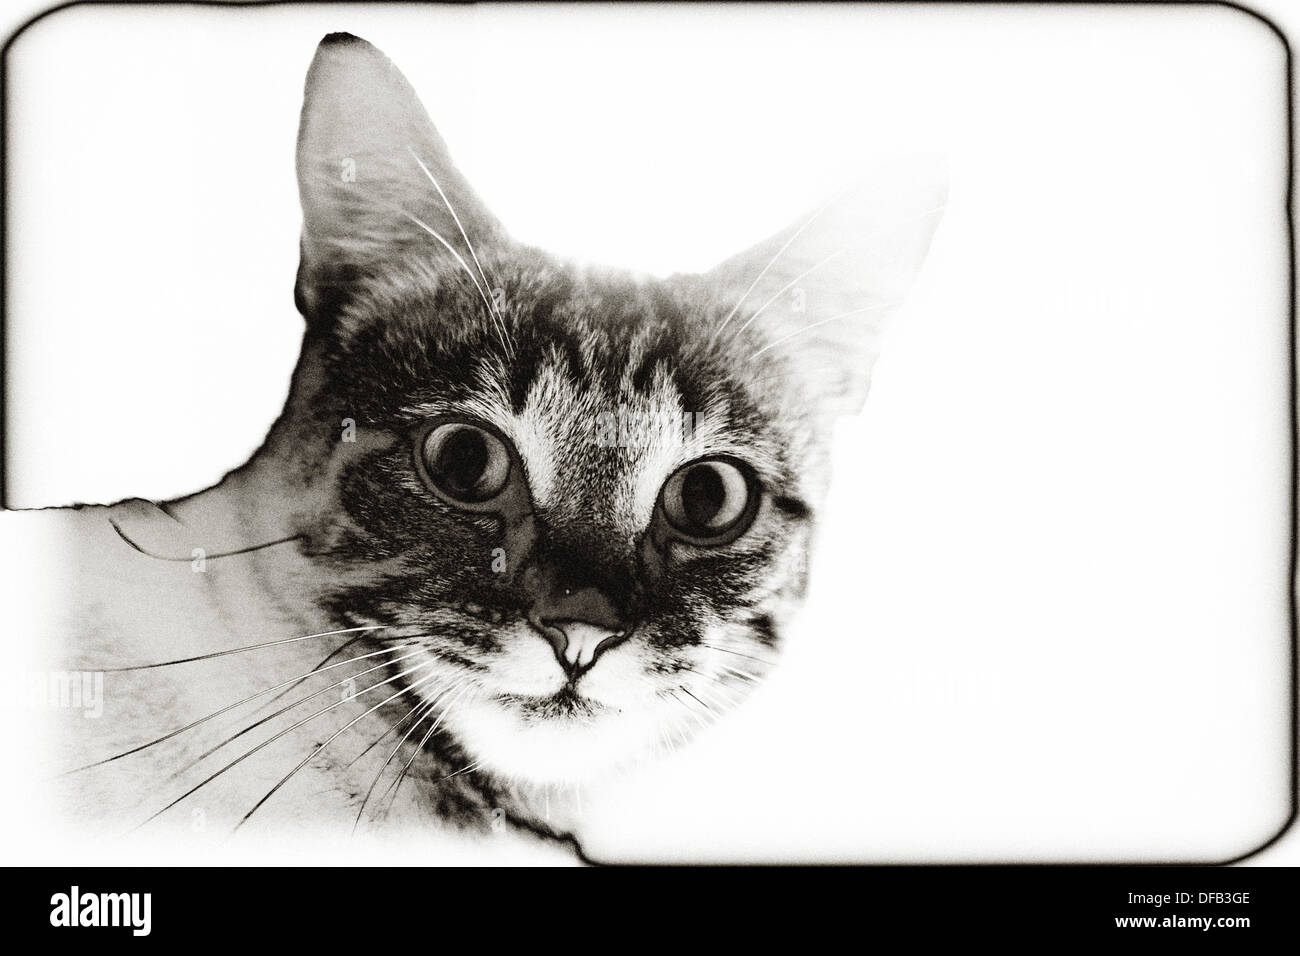 Solarised picture of a cat - Stock Image